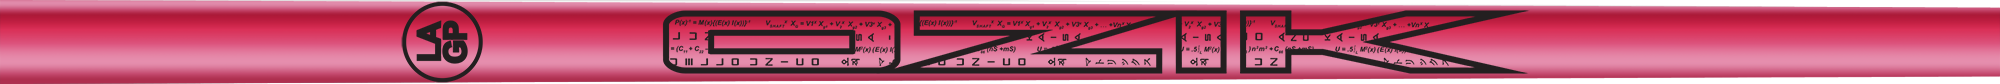 Ozik TPHDe: Neon Pink Black Gloss - Wood 71 XX